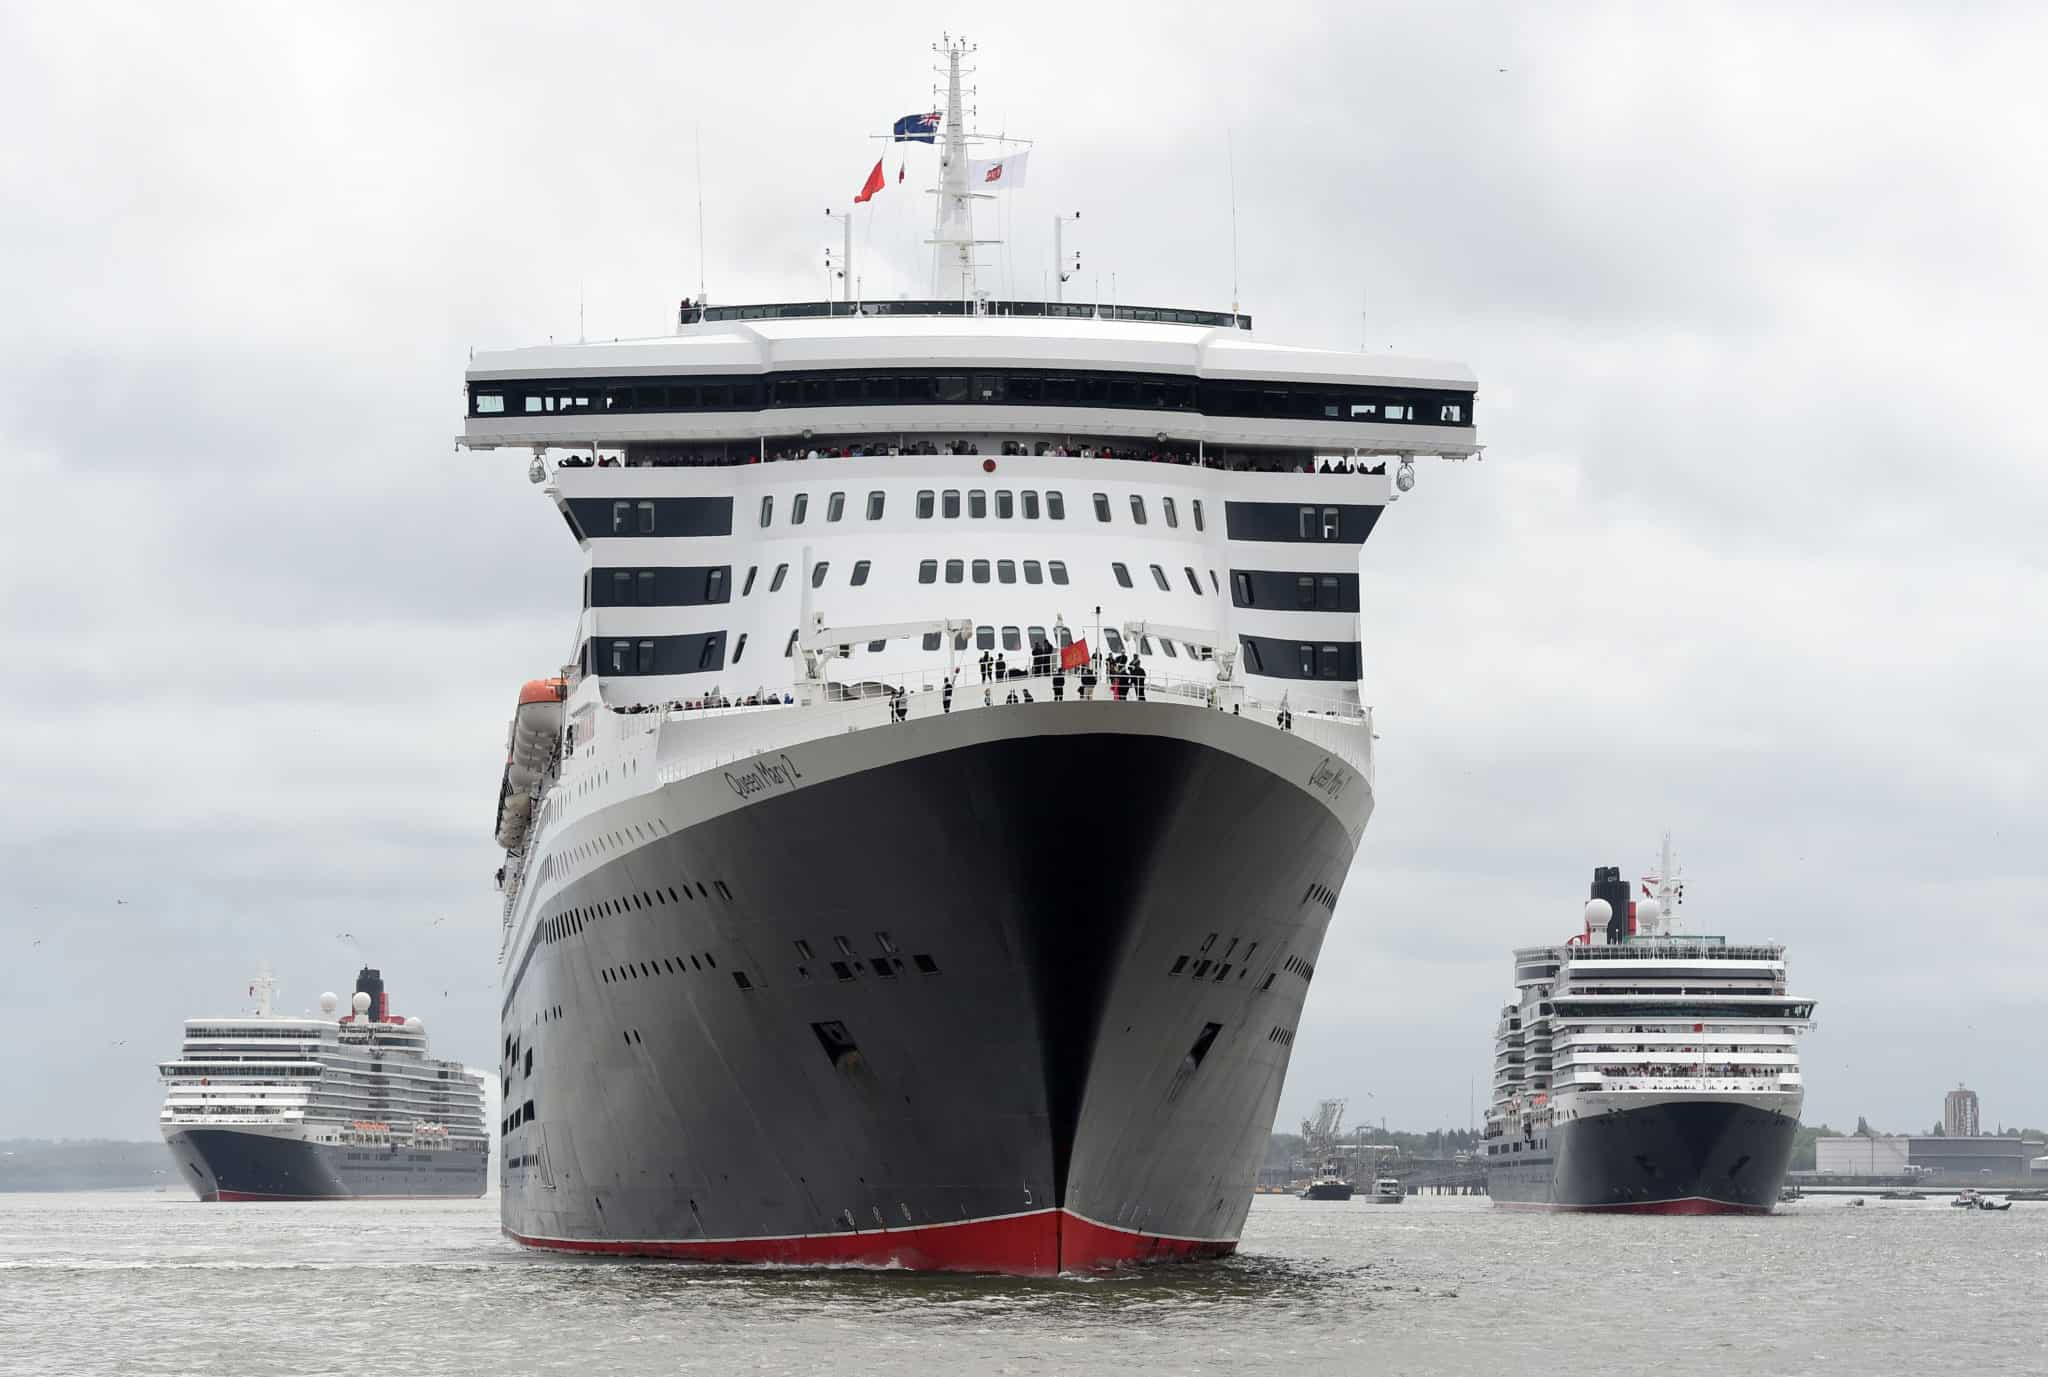 Cunard 175th celebrations on the River Mersey, Liverpool pictured The Three Queens cruise liners Queen Mary 2, Queen Elizabeth, Queen Victoria on the river. Photo by Colin Lane